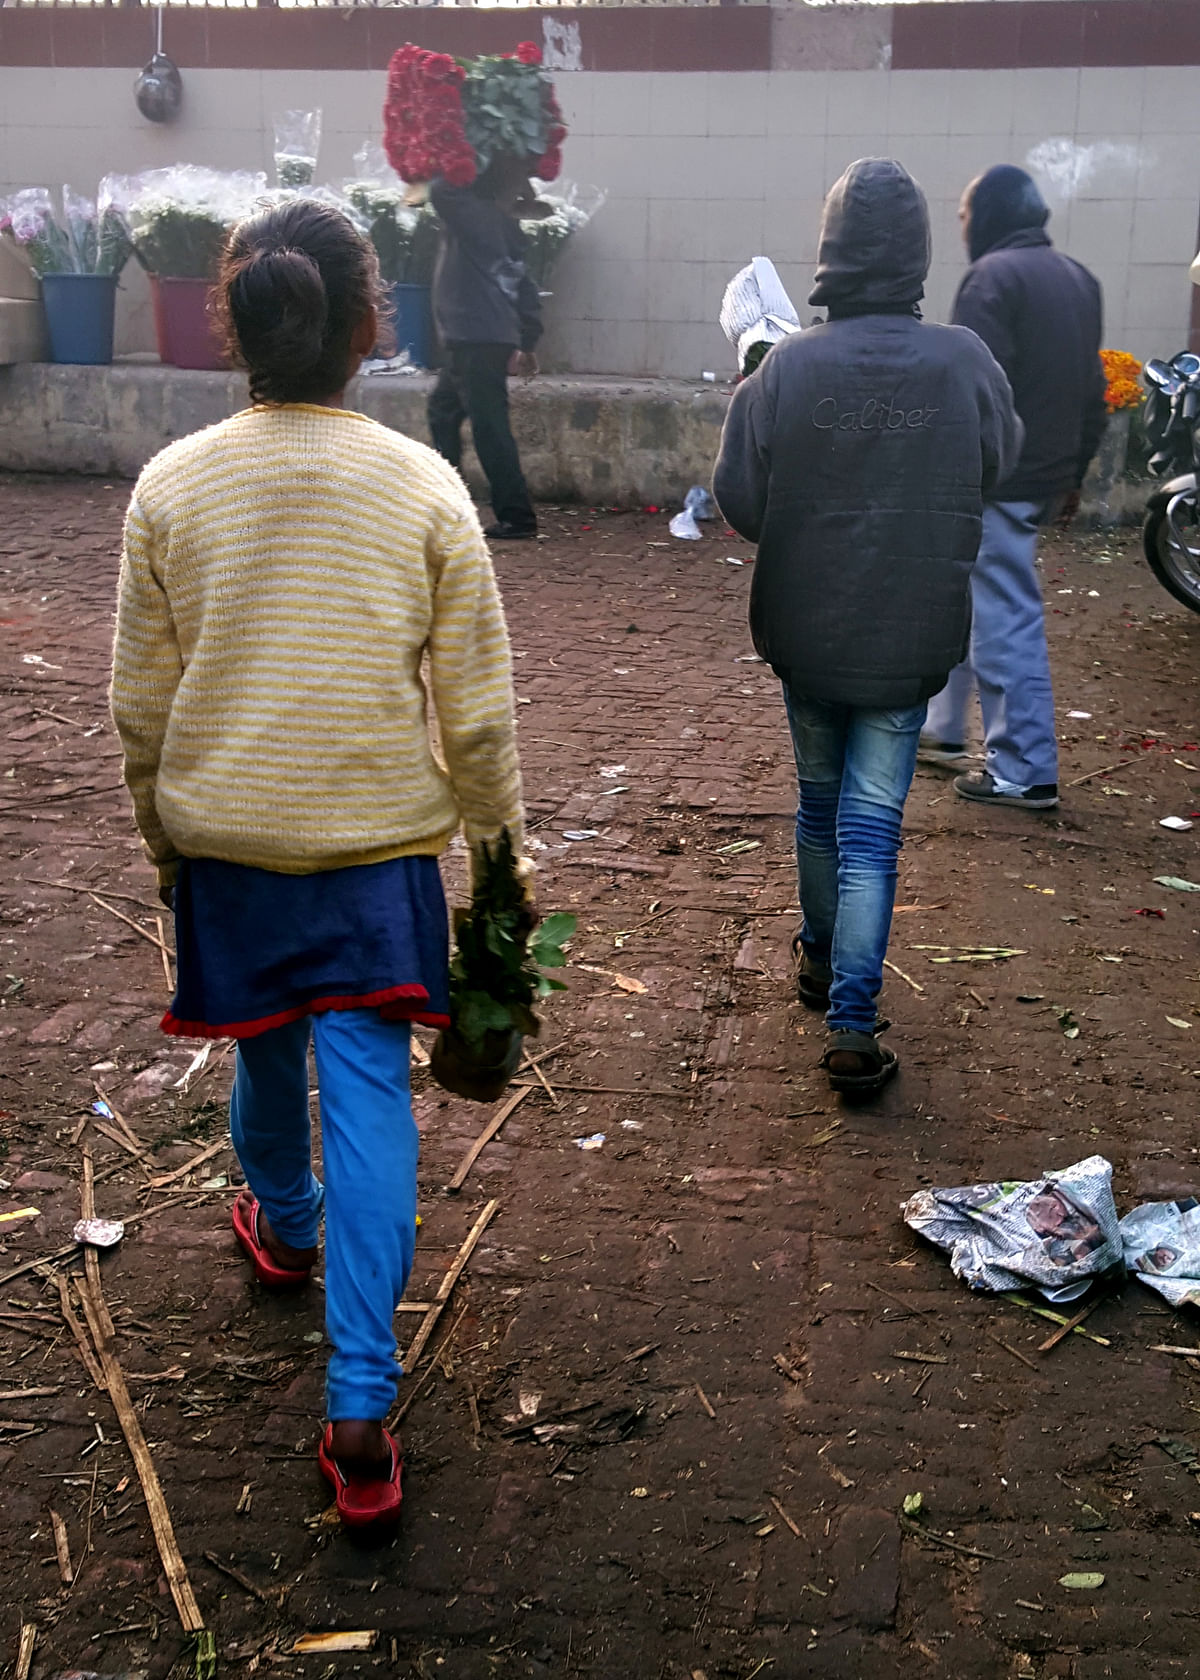 The workers at the flower market call this 'waste management by kids'. (Photo: Prashant Chahal/<b>The Quint</b>)